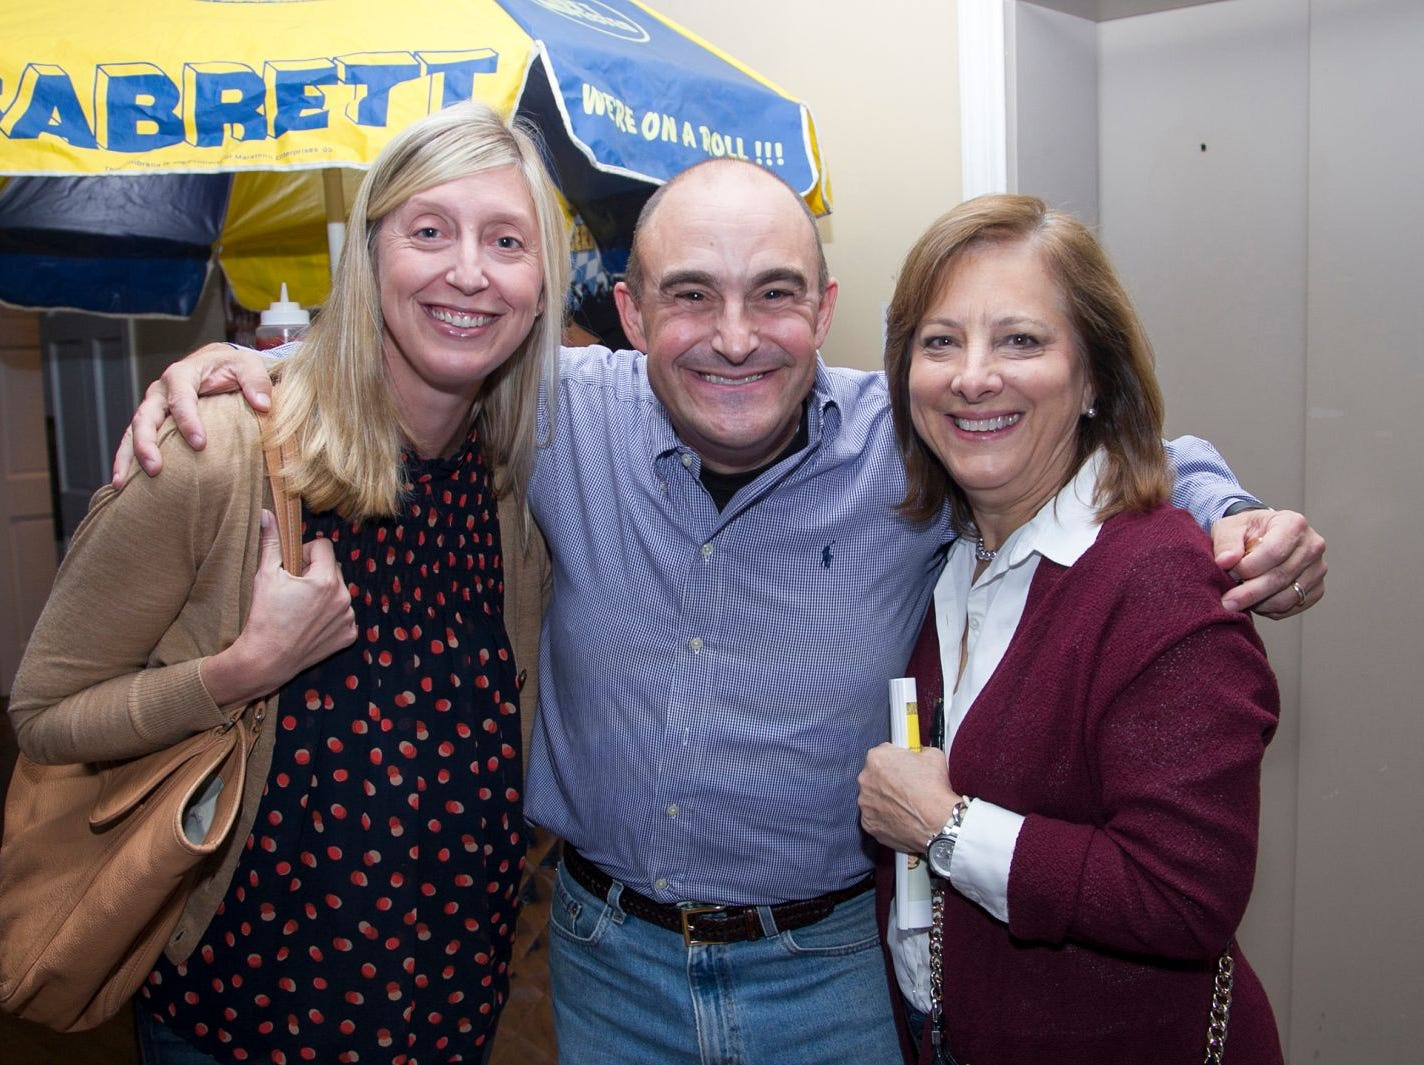 Mary Ferreri (Orchard Principal), Paul Semindinger (Hanes Principal), Margy Leininger (Travell Pricipal). Ridgewood Education Foundation Host Oktoberfest at the Hermitage. 09/29/2018